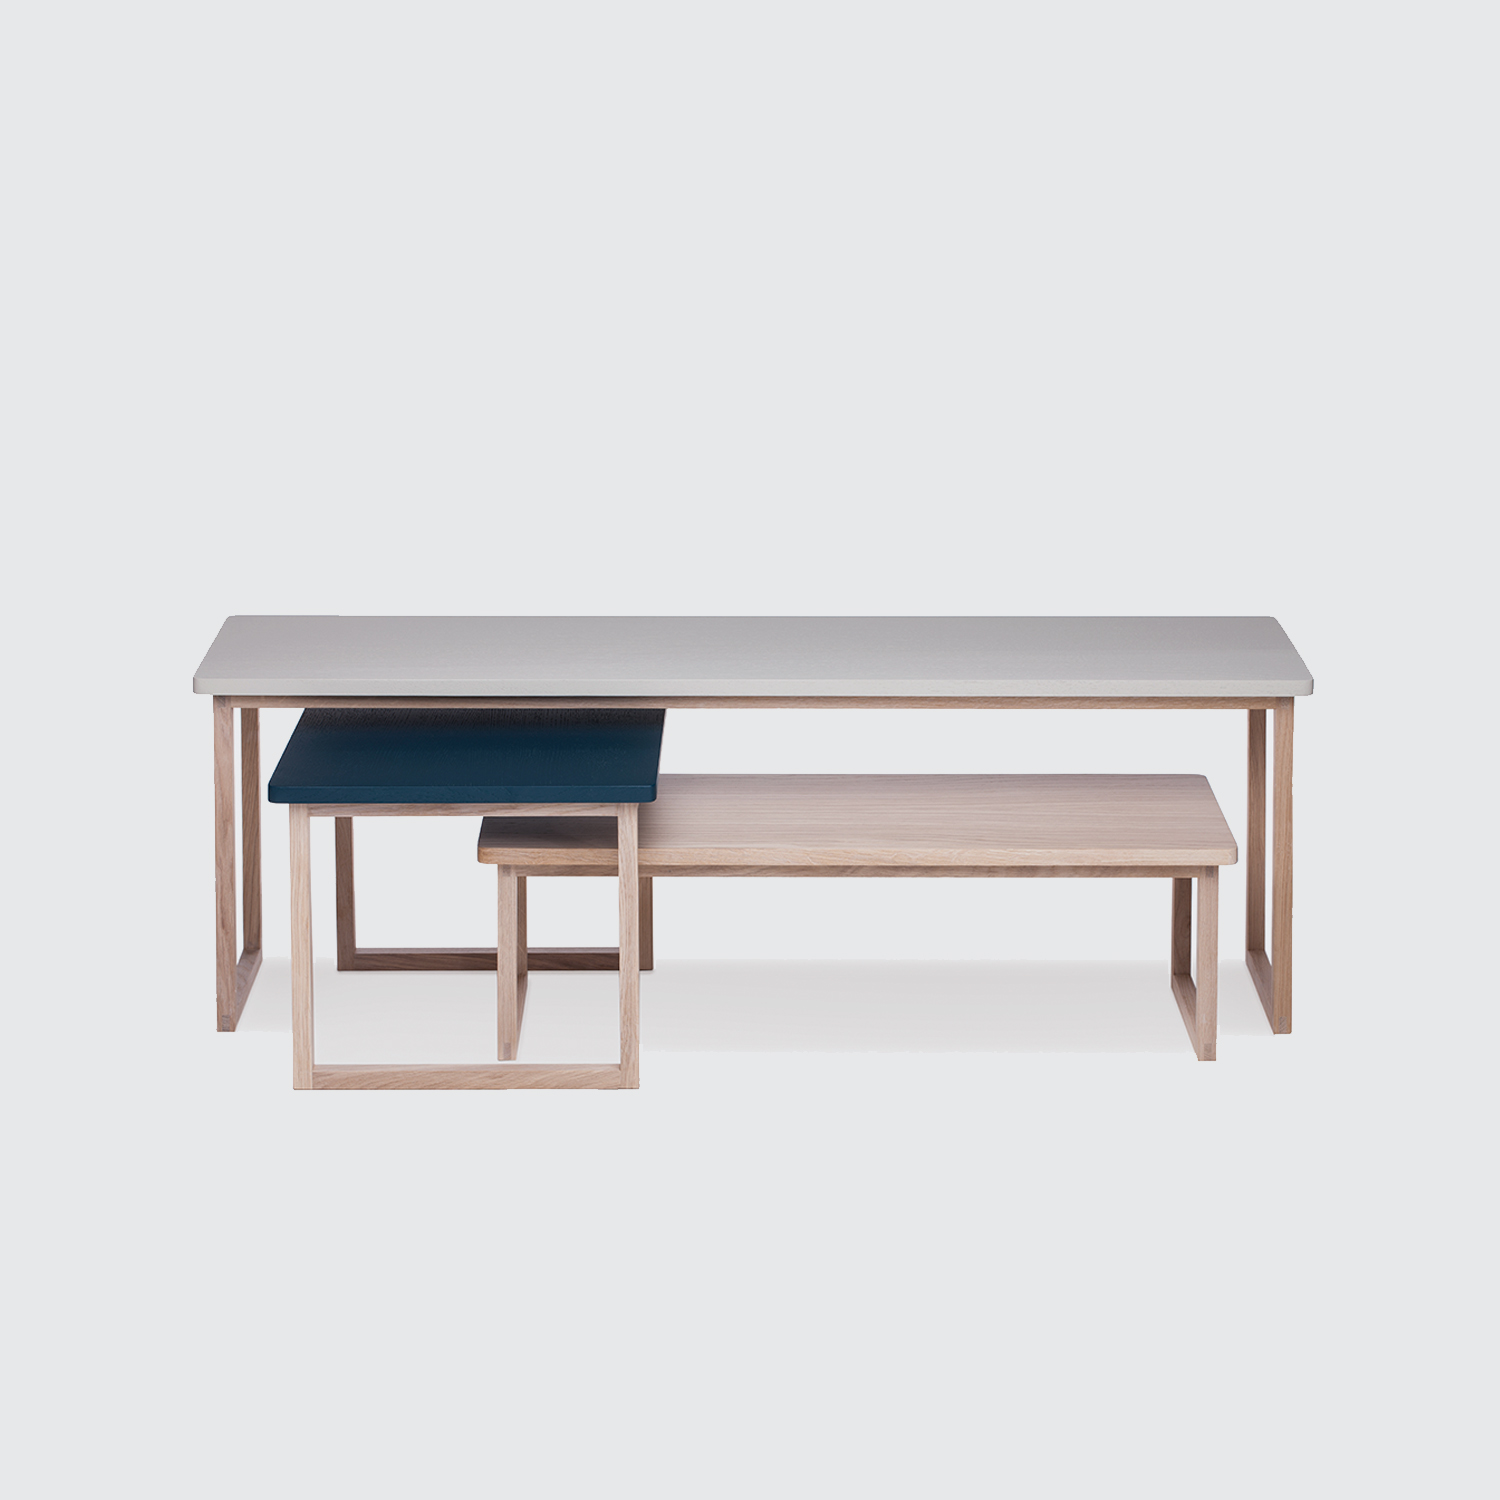 """Furniture for Another Brand. """"Another Brand continues Theo Williams' mission to create simple, considered products"""" -Elle Decoration"""